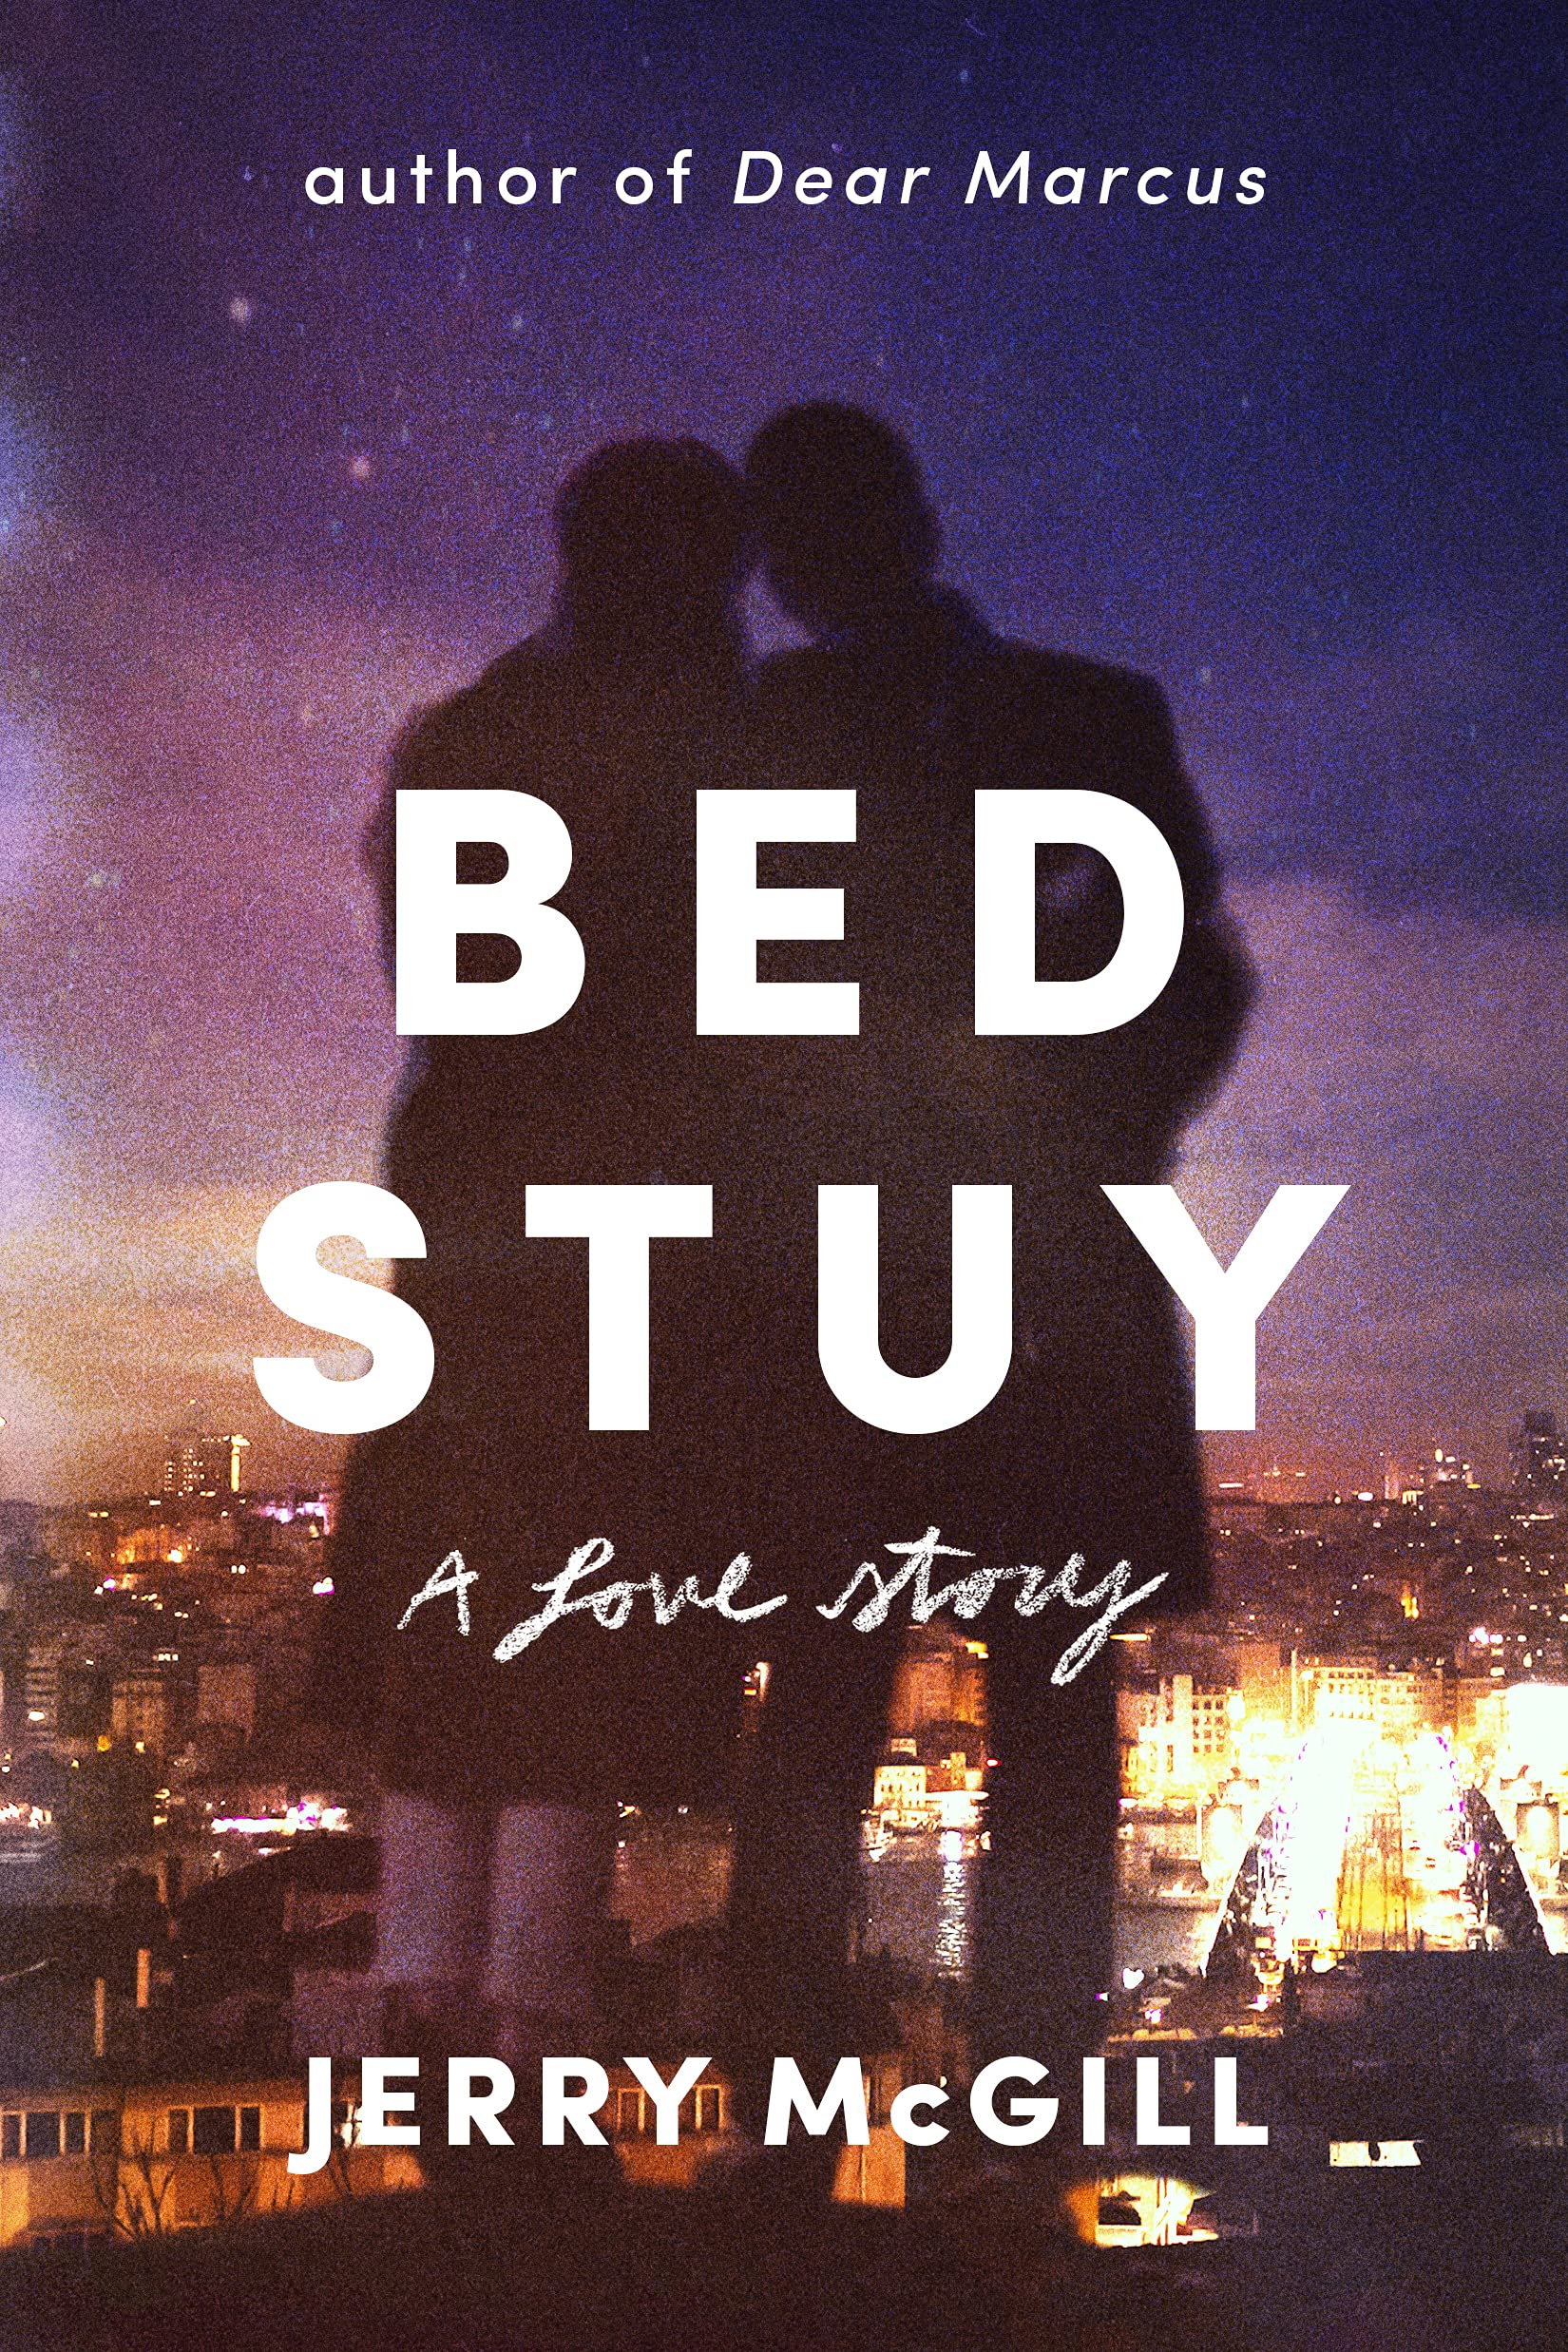 When Will Bed Stuy Come Out? Jerry McGill 2021 New Book